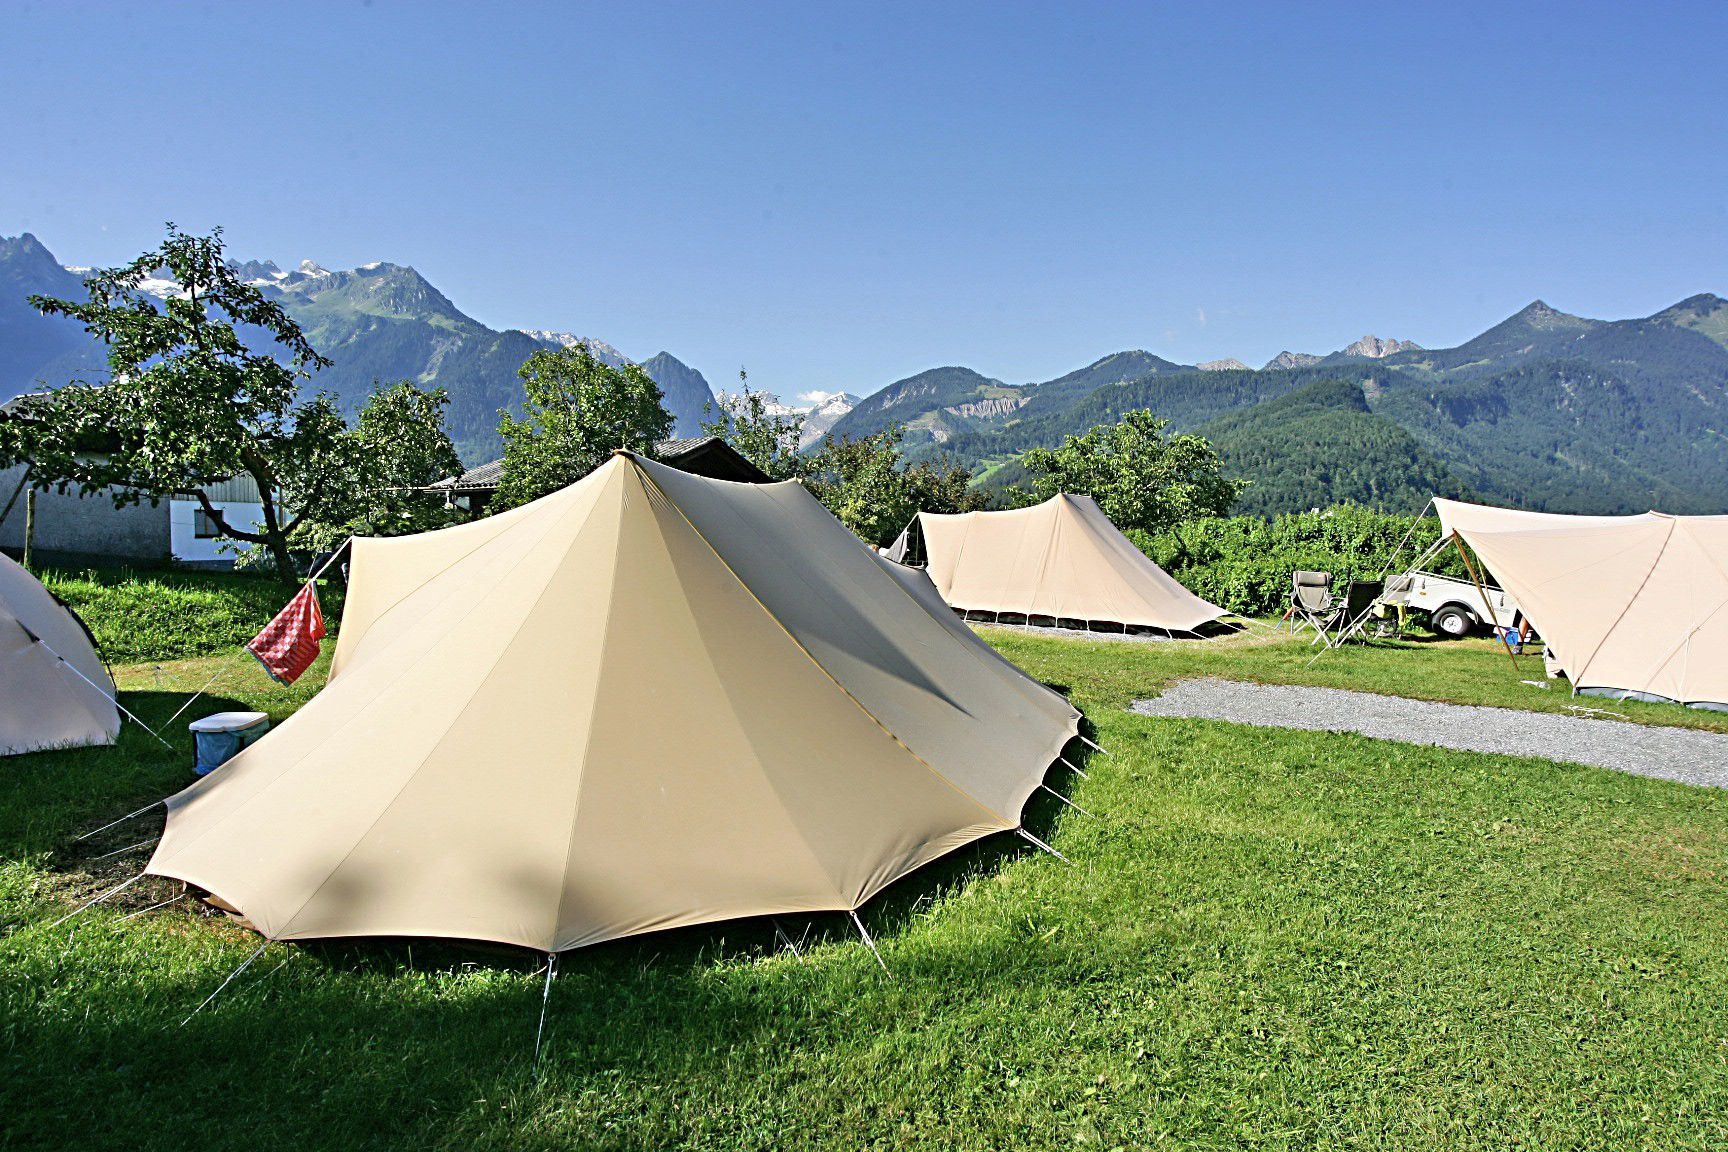 Meticulous and atmospheric campsite ringed by the peaks of Vorarlberg's mountain ranges.